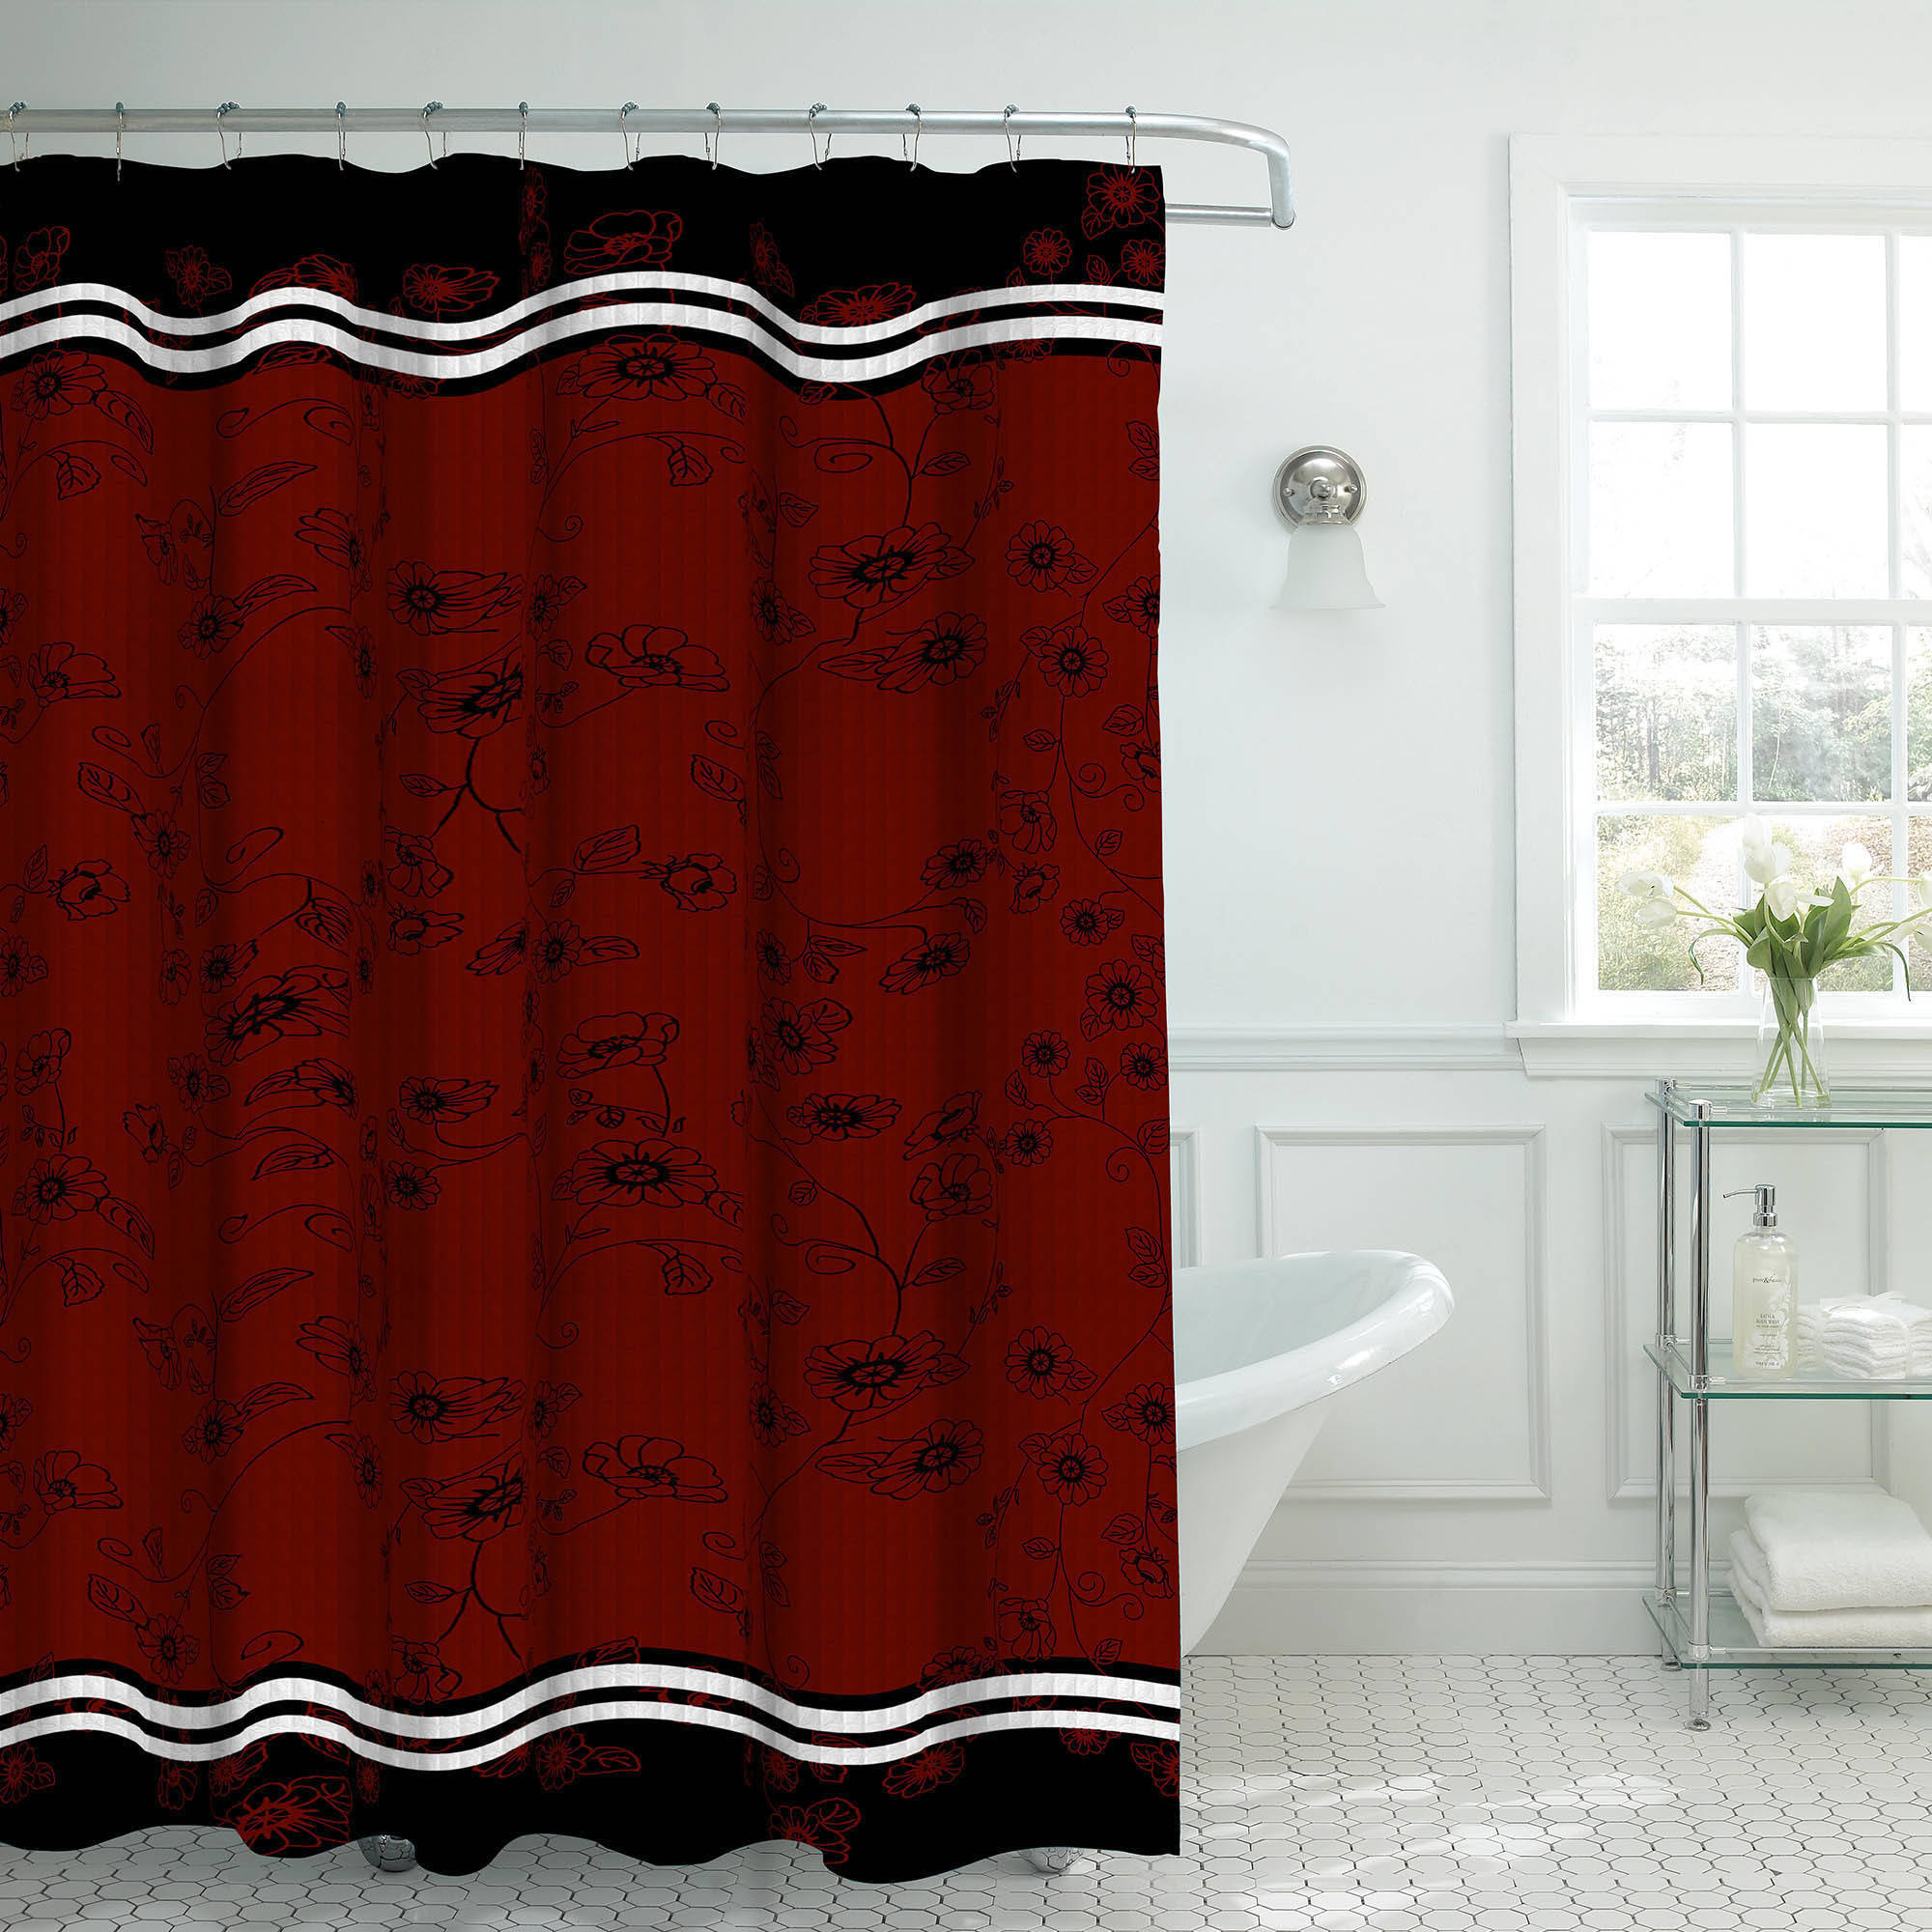 Bounce Comfort Oxford Weave Textured 13-Piece Shower Curtain Set with Metal Roller Hooks, Kalista Black/Red